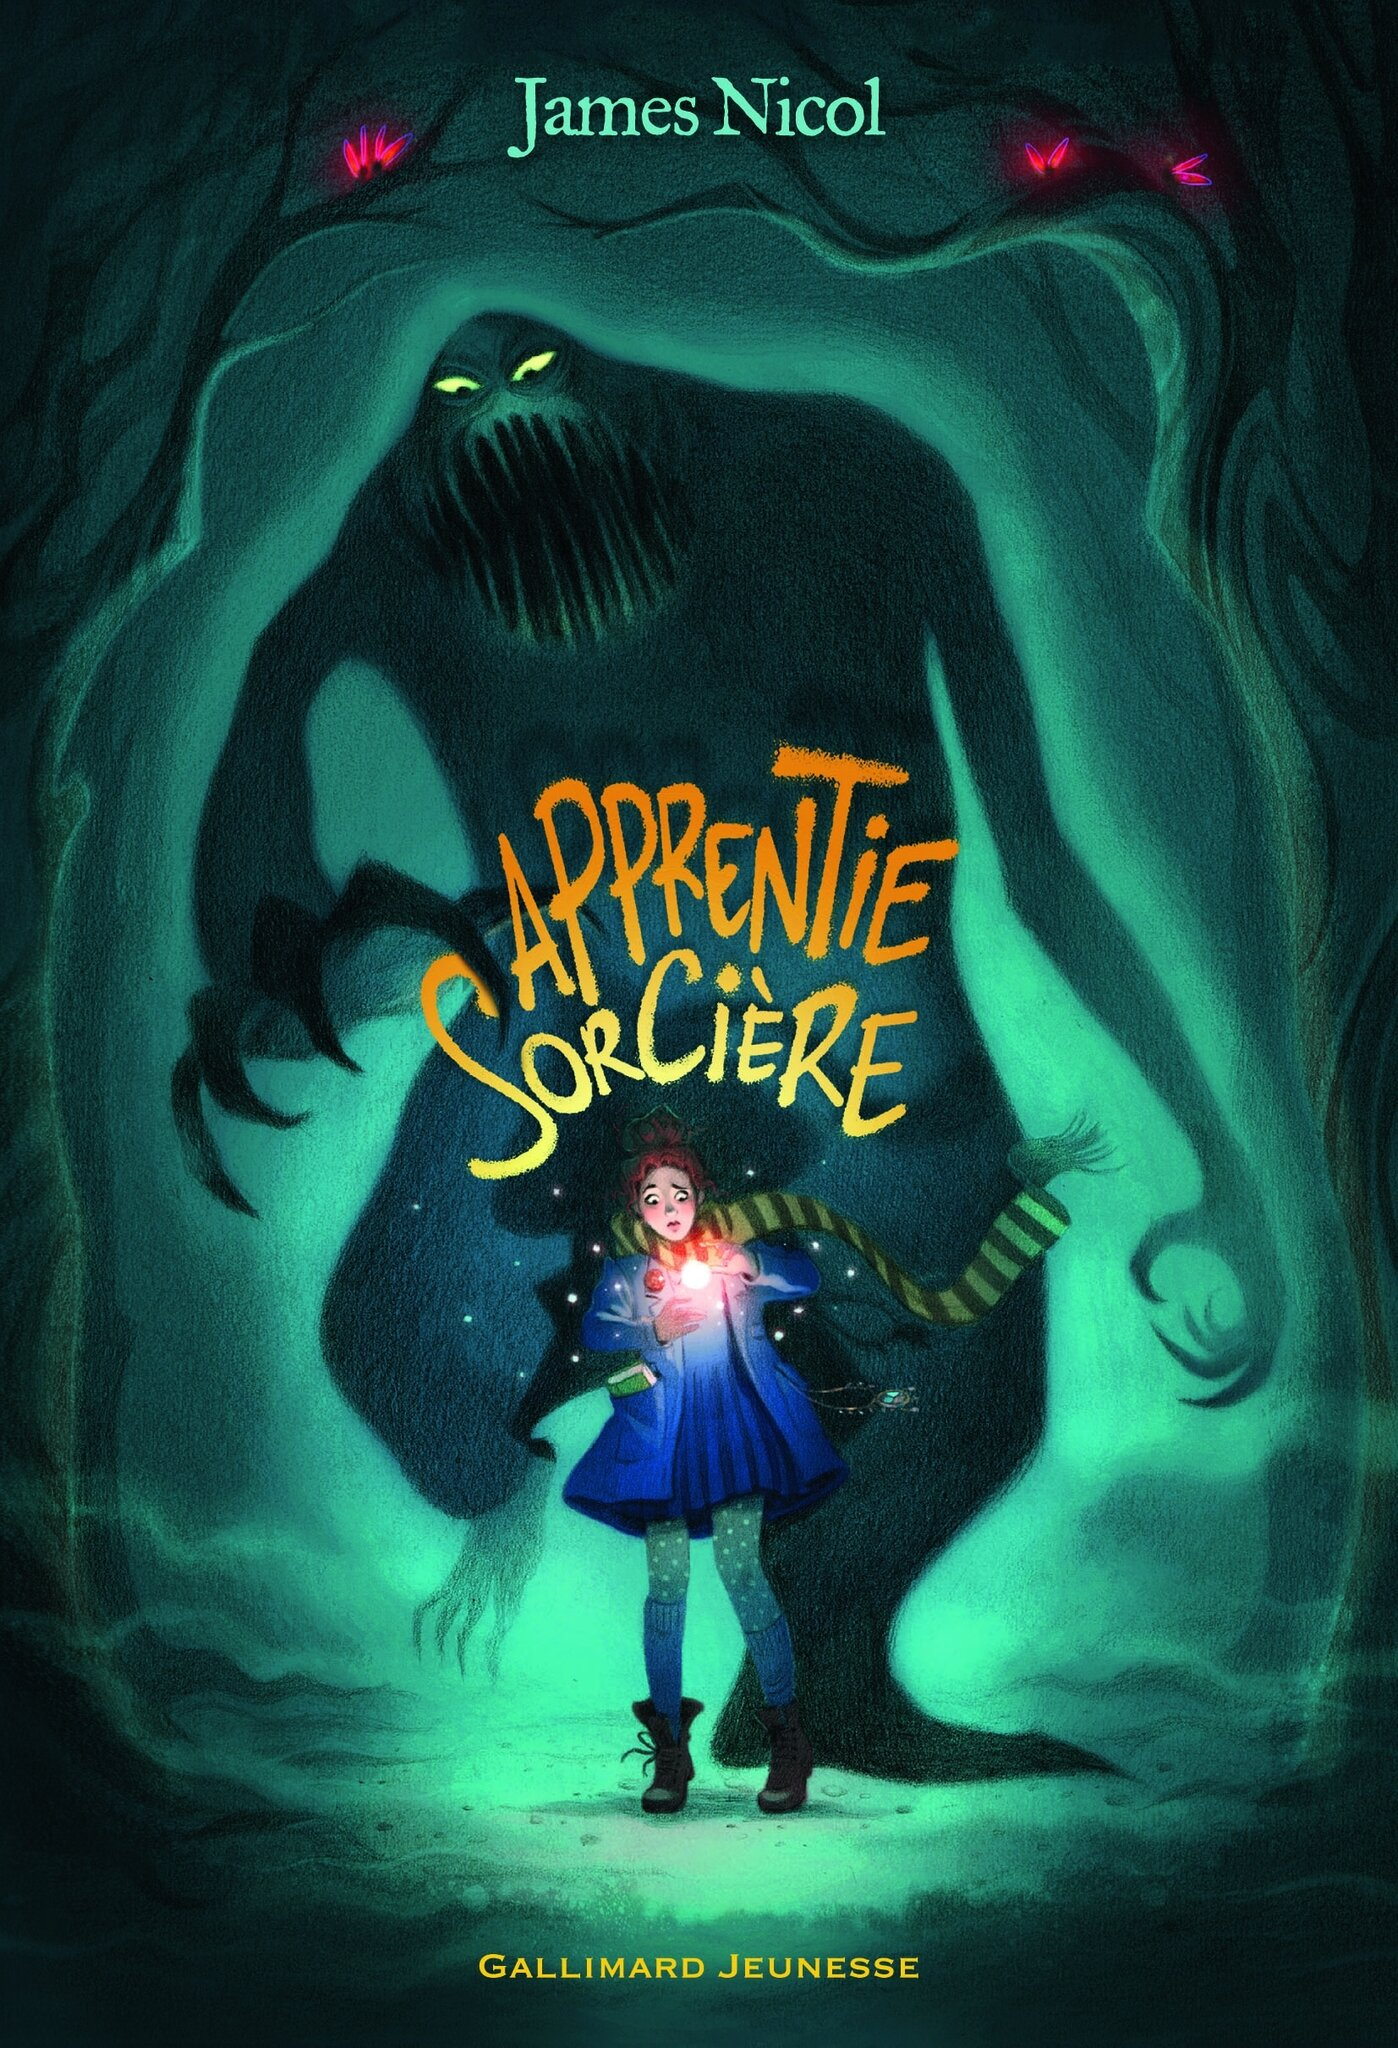 Apprentie sorcière, de James Nicol